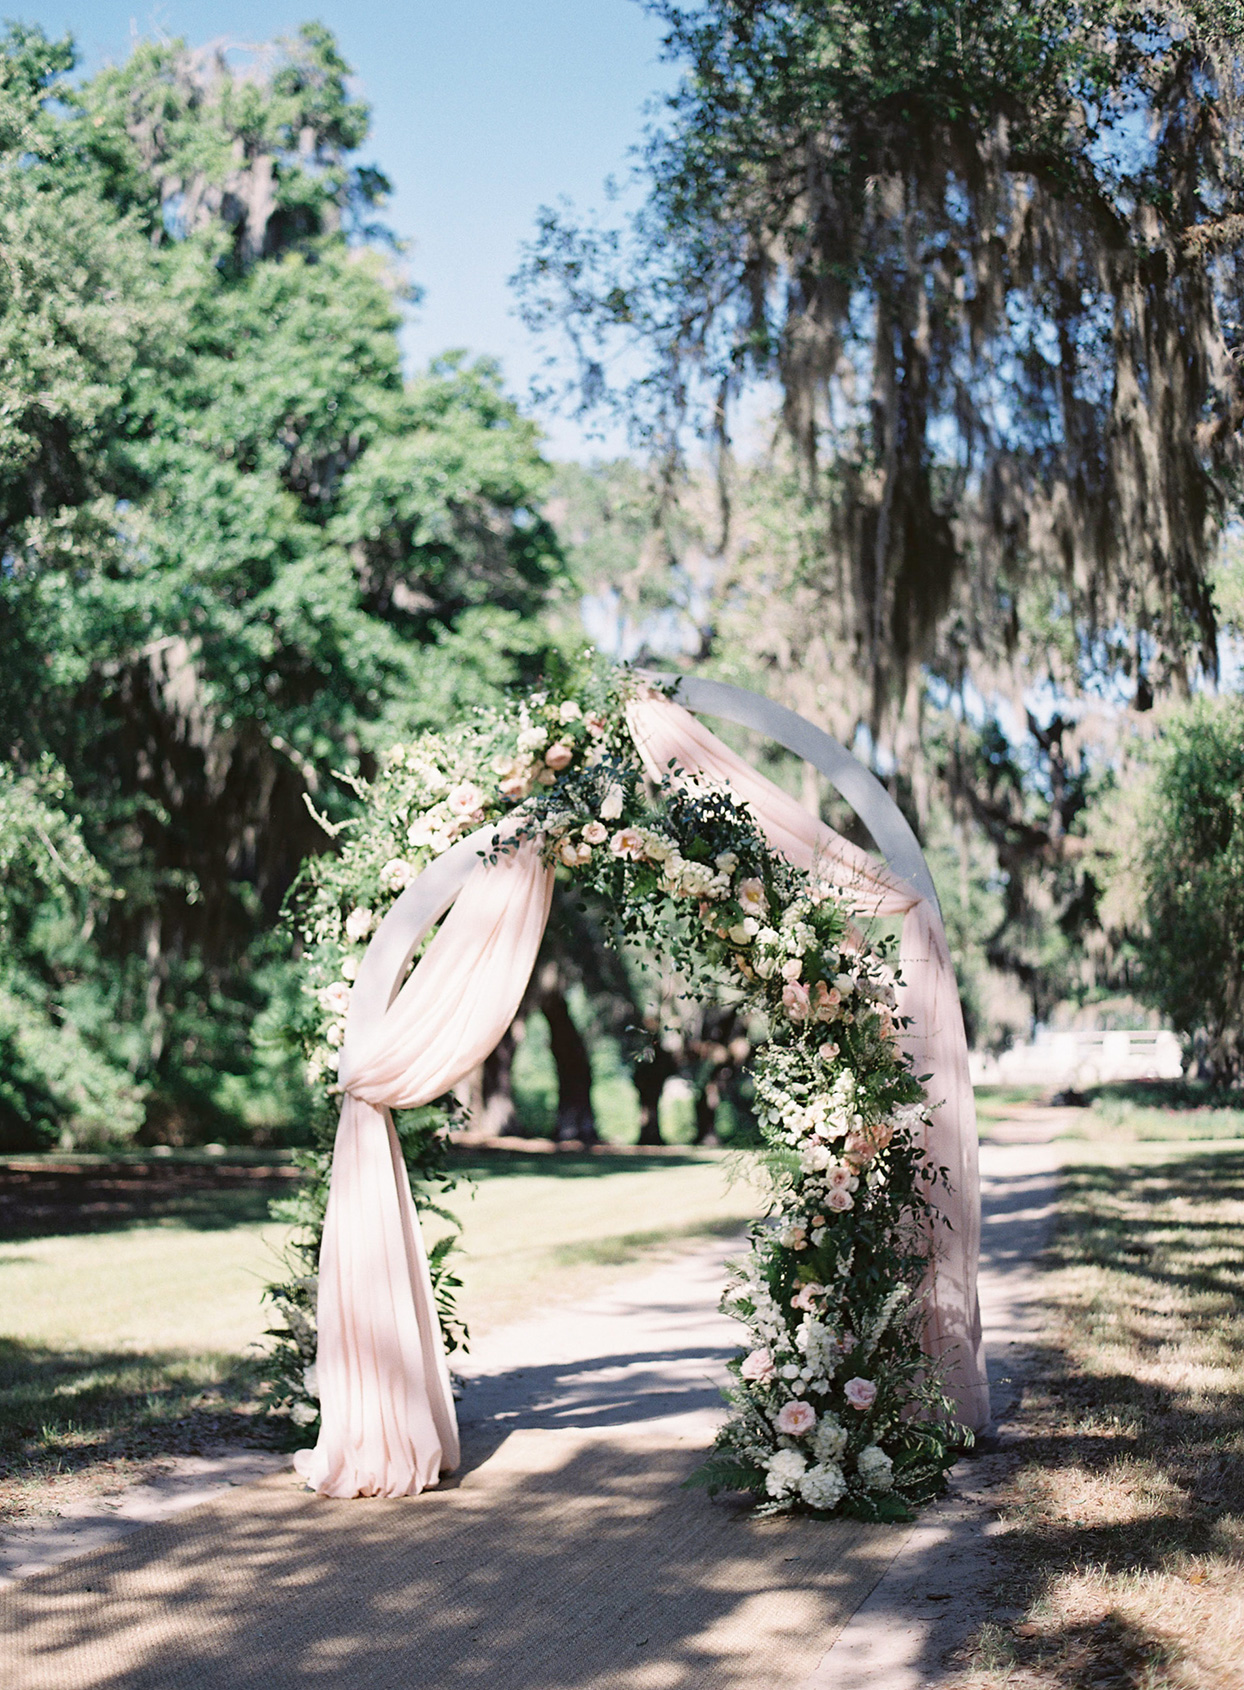 chelsea john wedding ceremony arch on dirt road